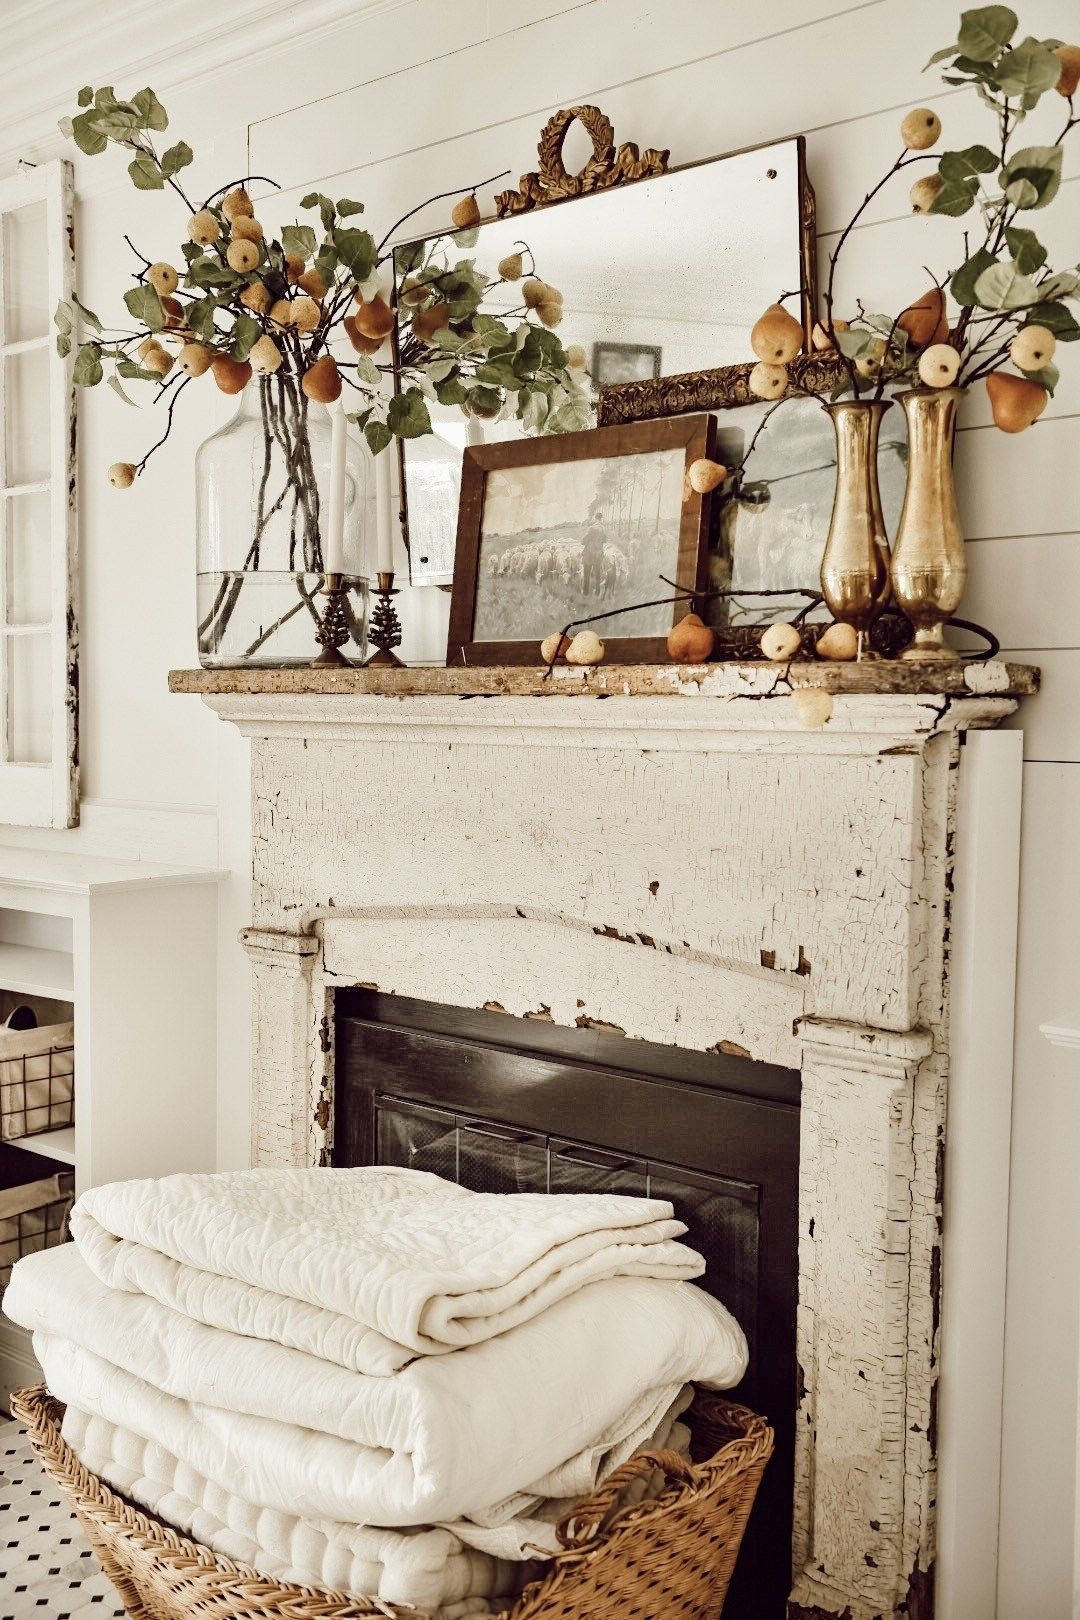 Eclectic Antique Fall Pear Mantel Farm House Living Room Chic Home Decor Decor